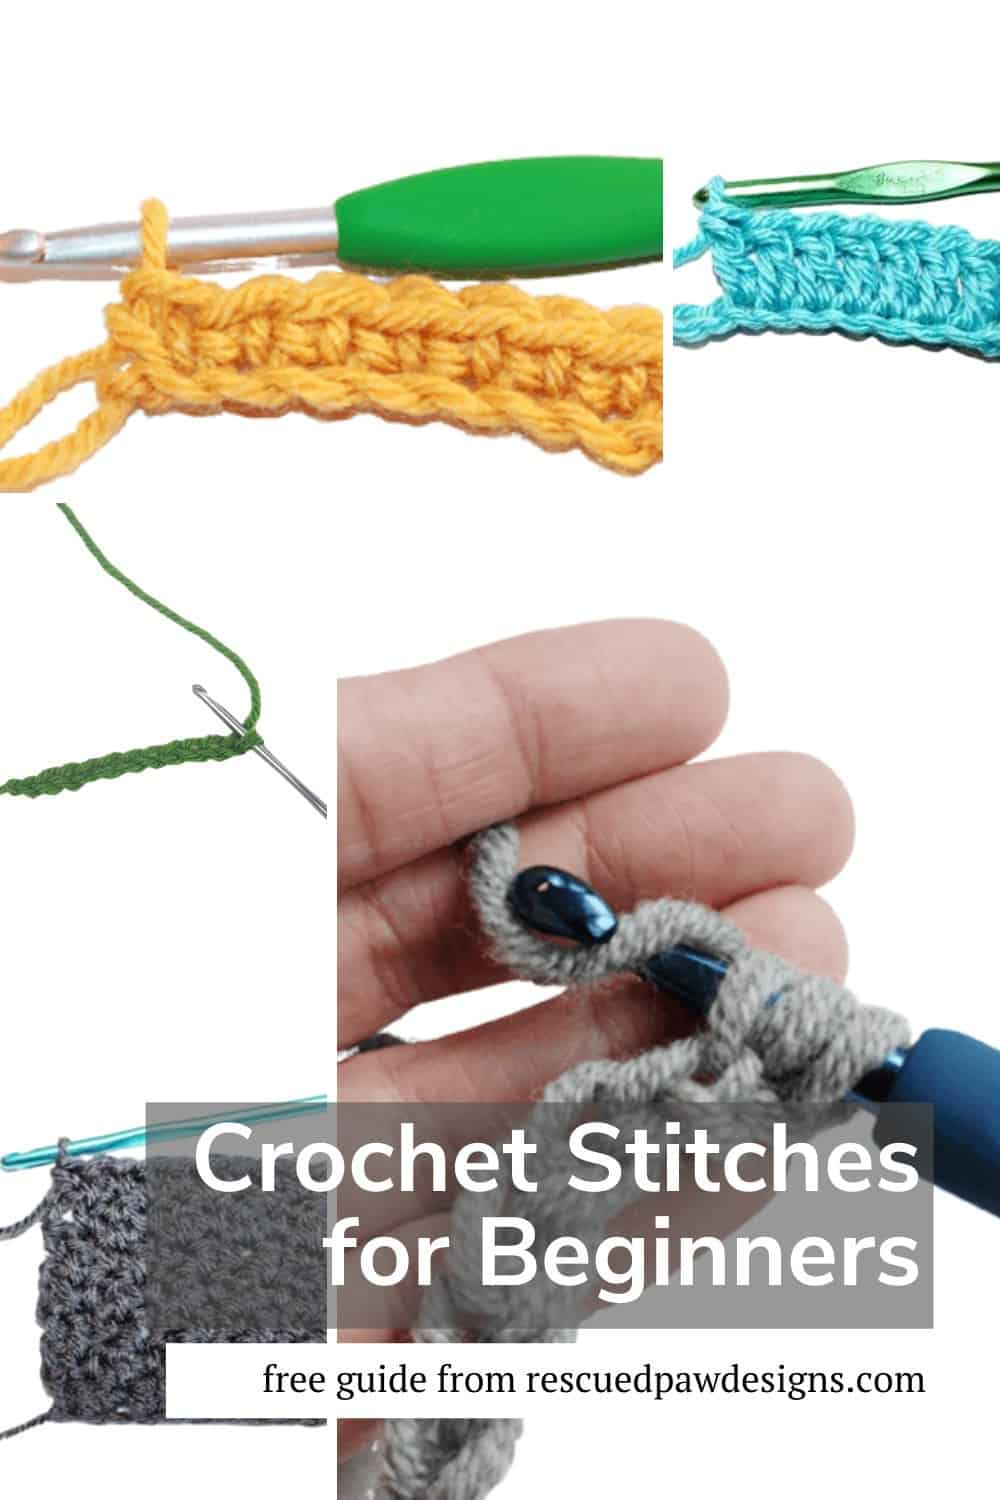 Basic Crochet Stitches for Beginners